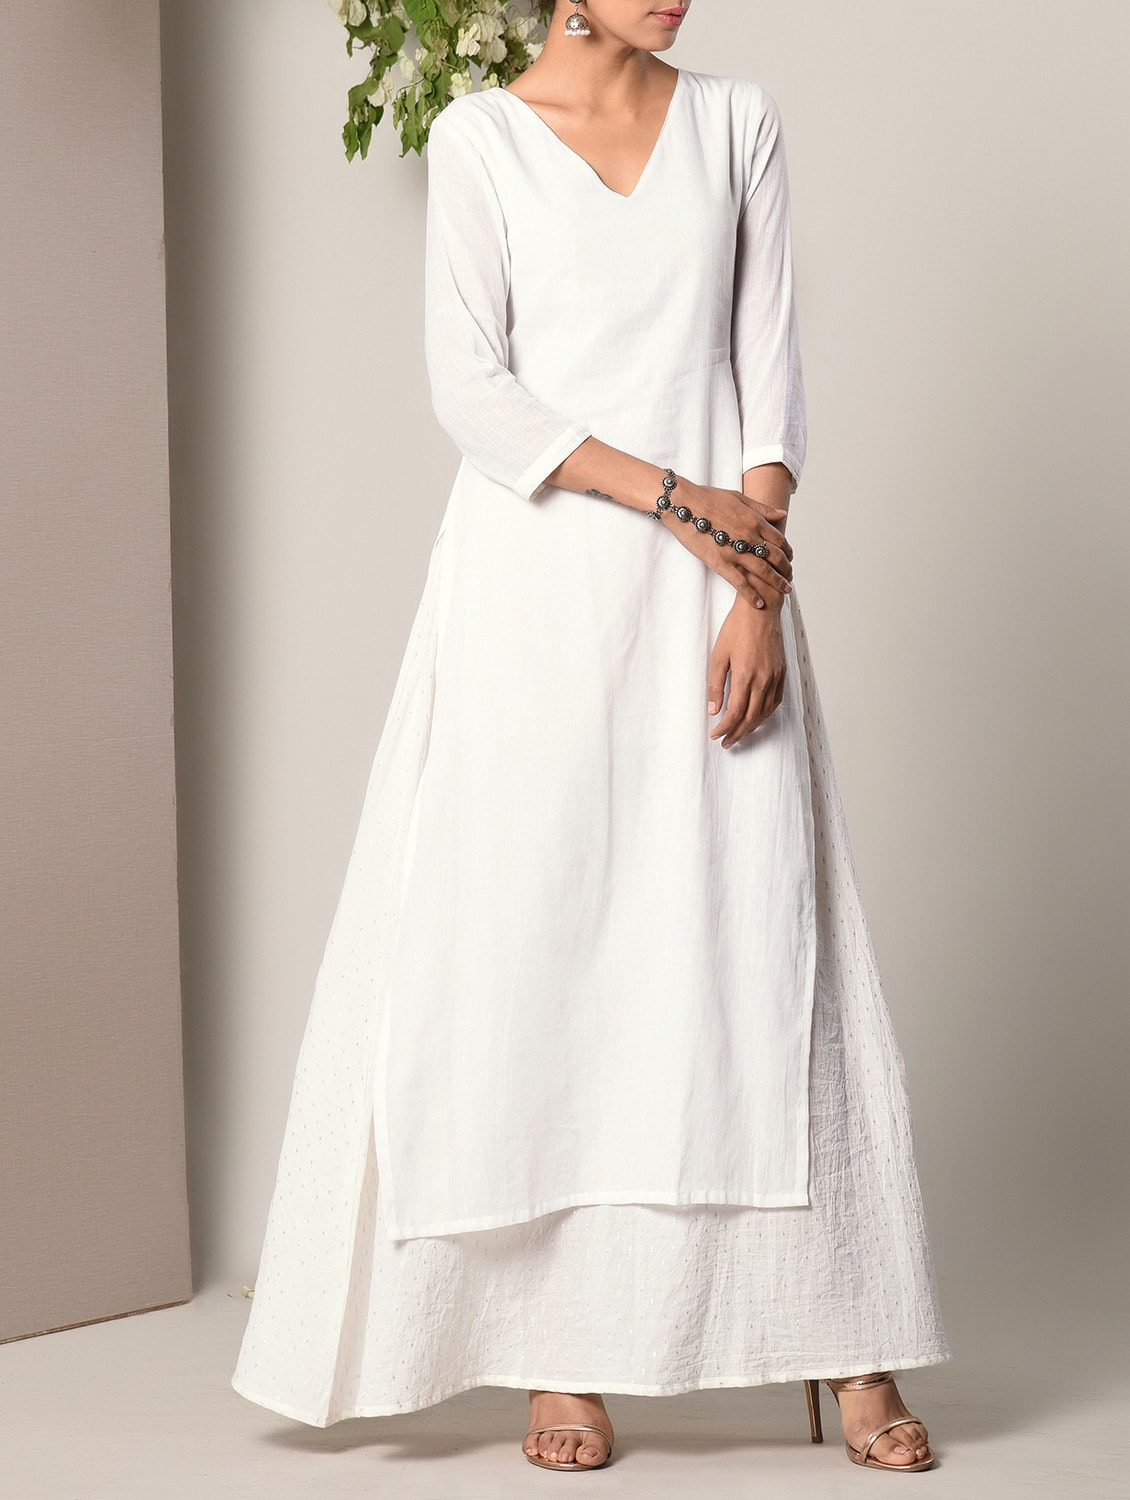 518944c23cc Buy White Layered Cotton Maxi Dress for Women from Truebrowns for ₹2814 at  12% off